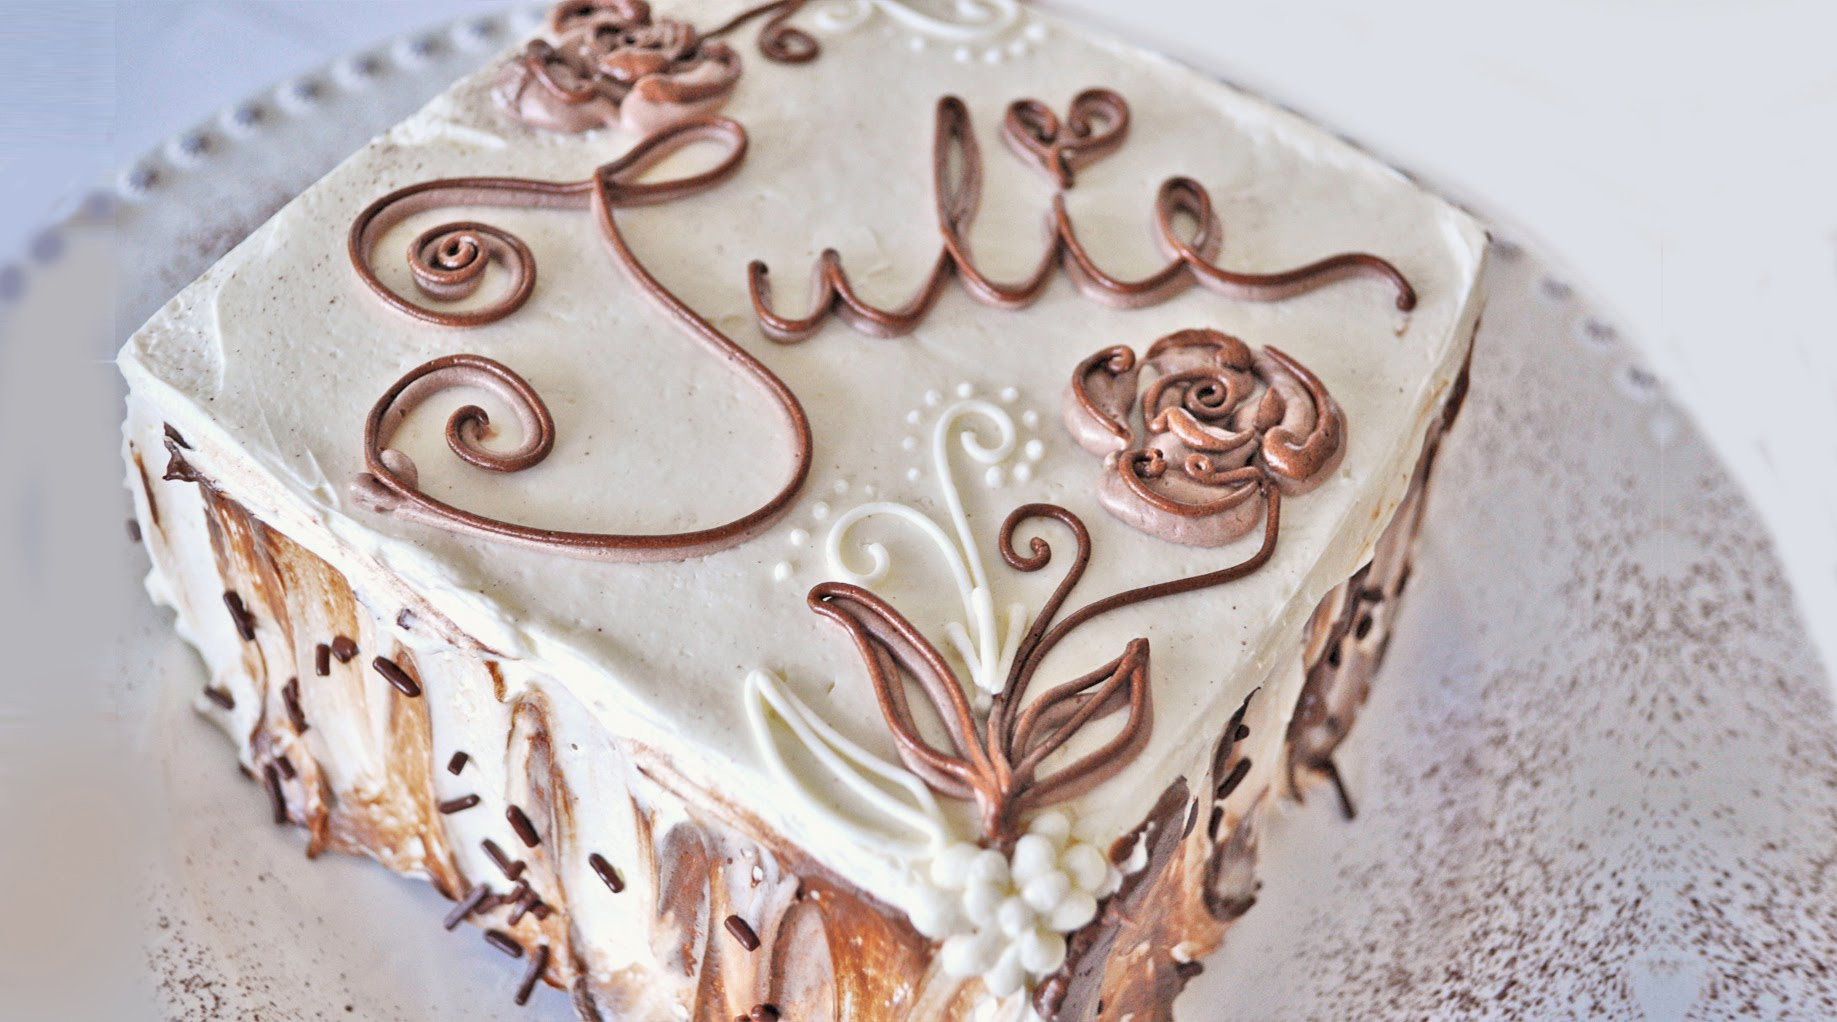 White Cake with Chocolate Frosting Decorating Ideas